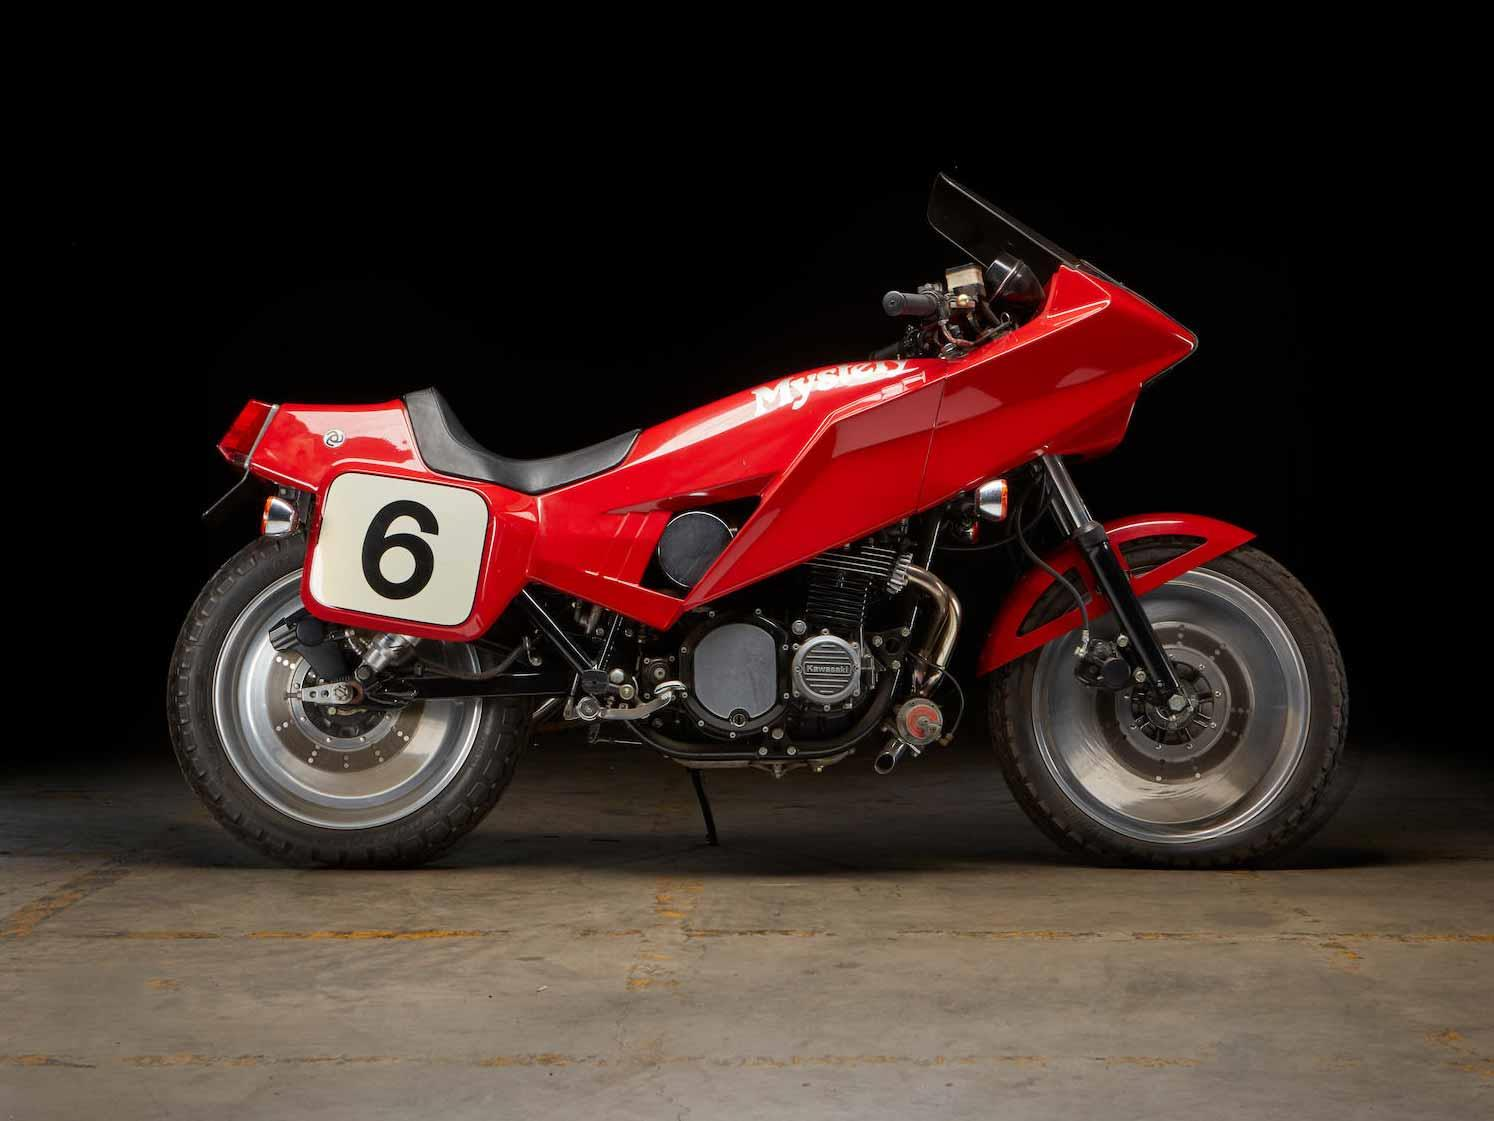 This 1980 Kawasaki Mystery Ship is up for grabs